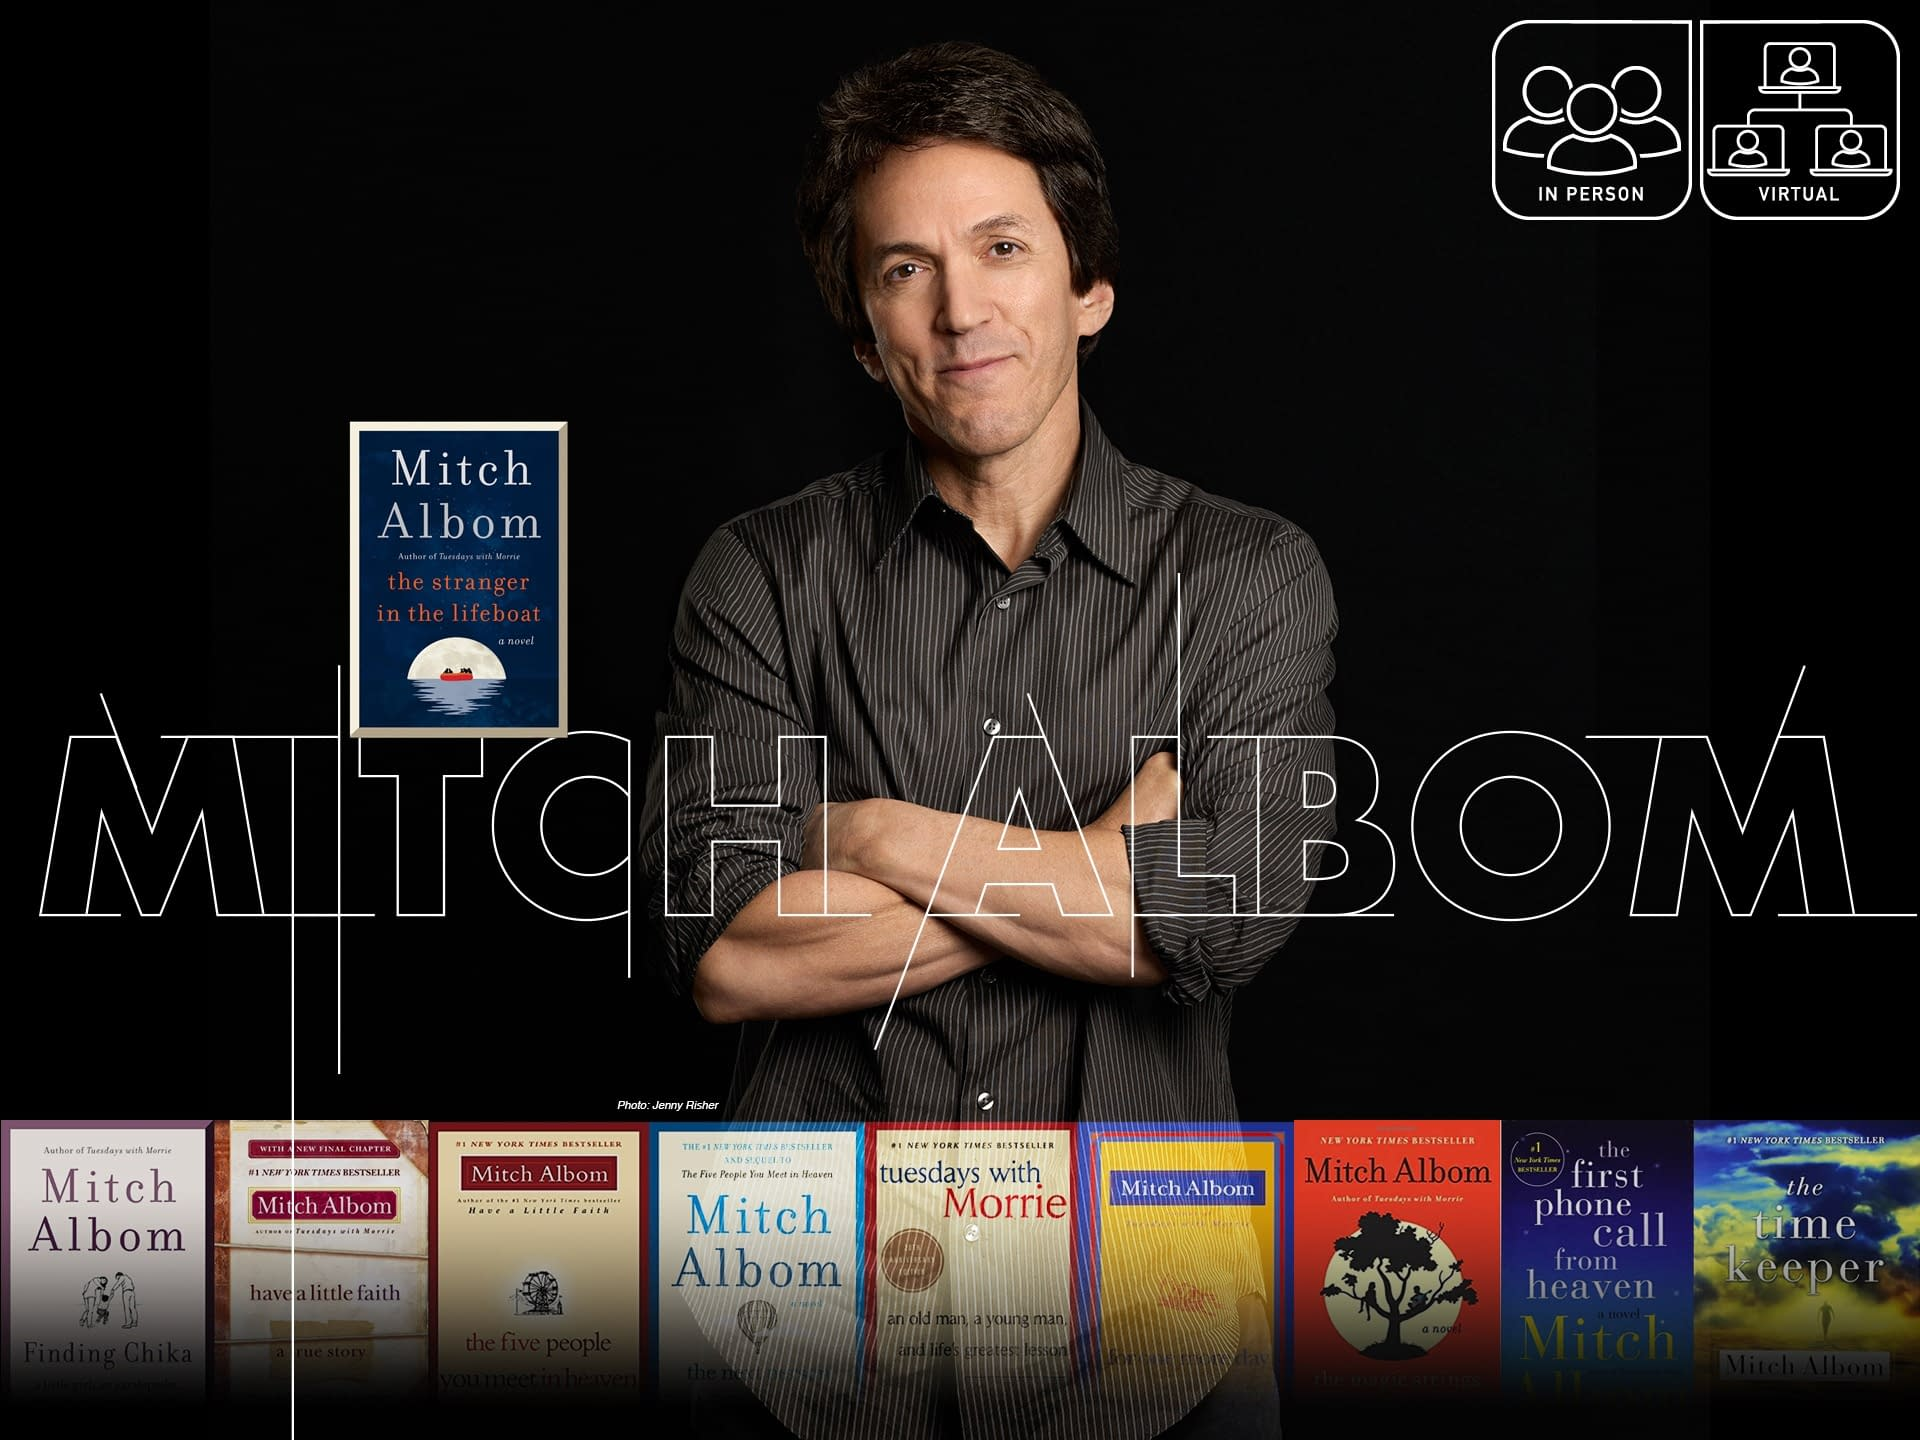 An Evening with Mitch Albom 3 - - author